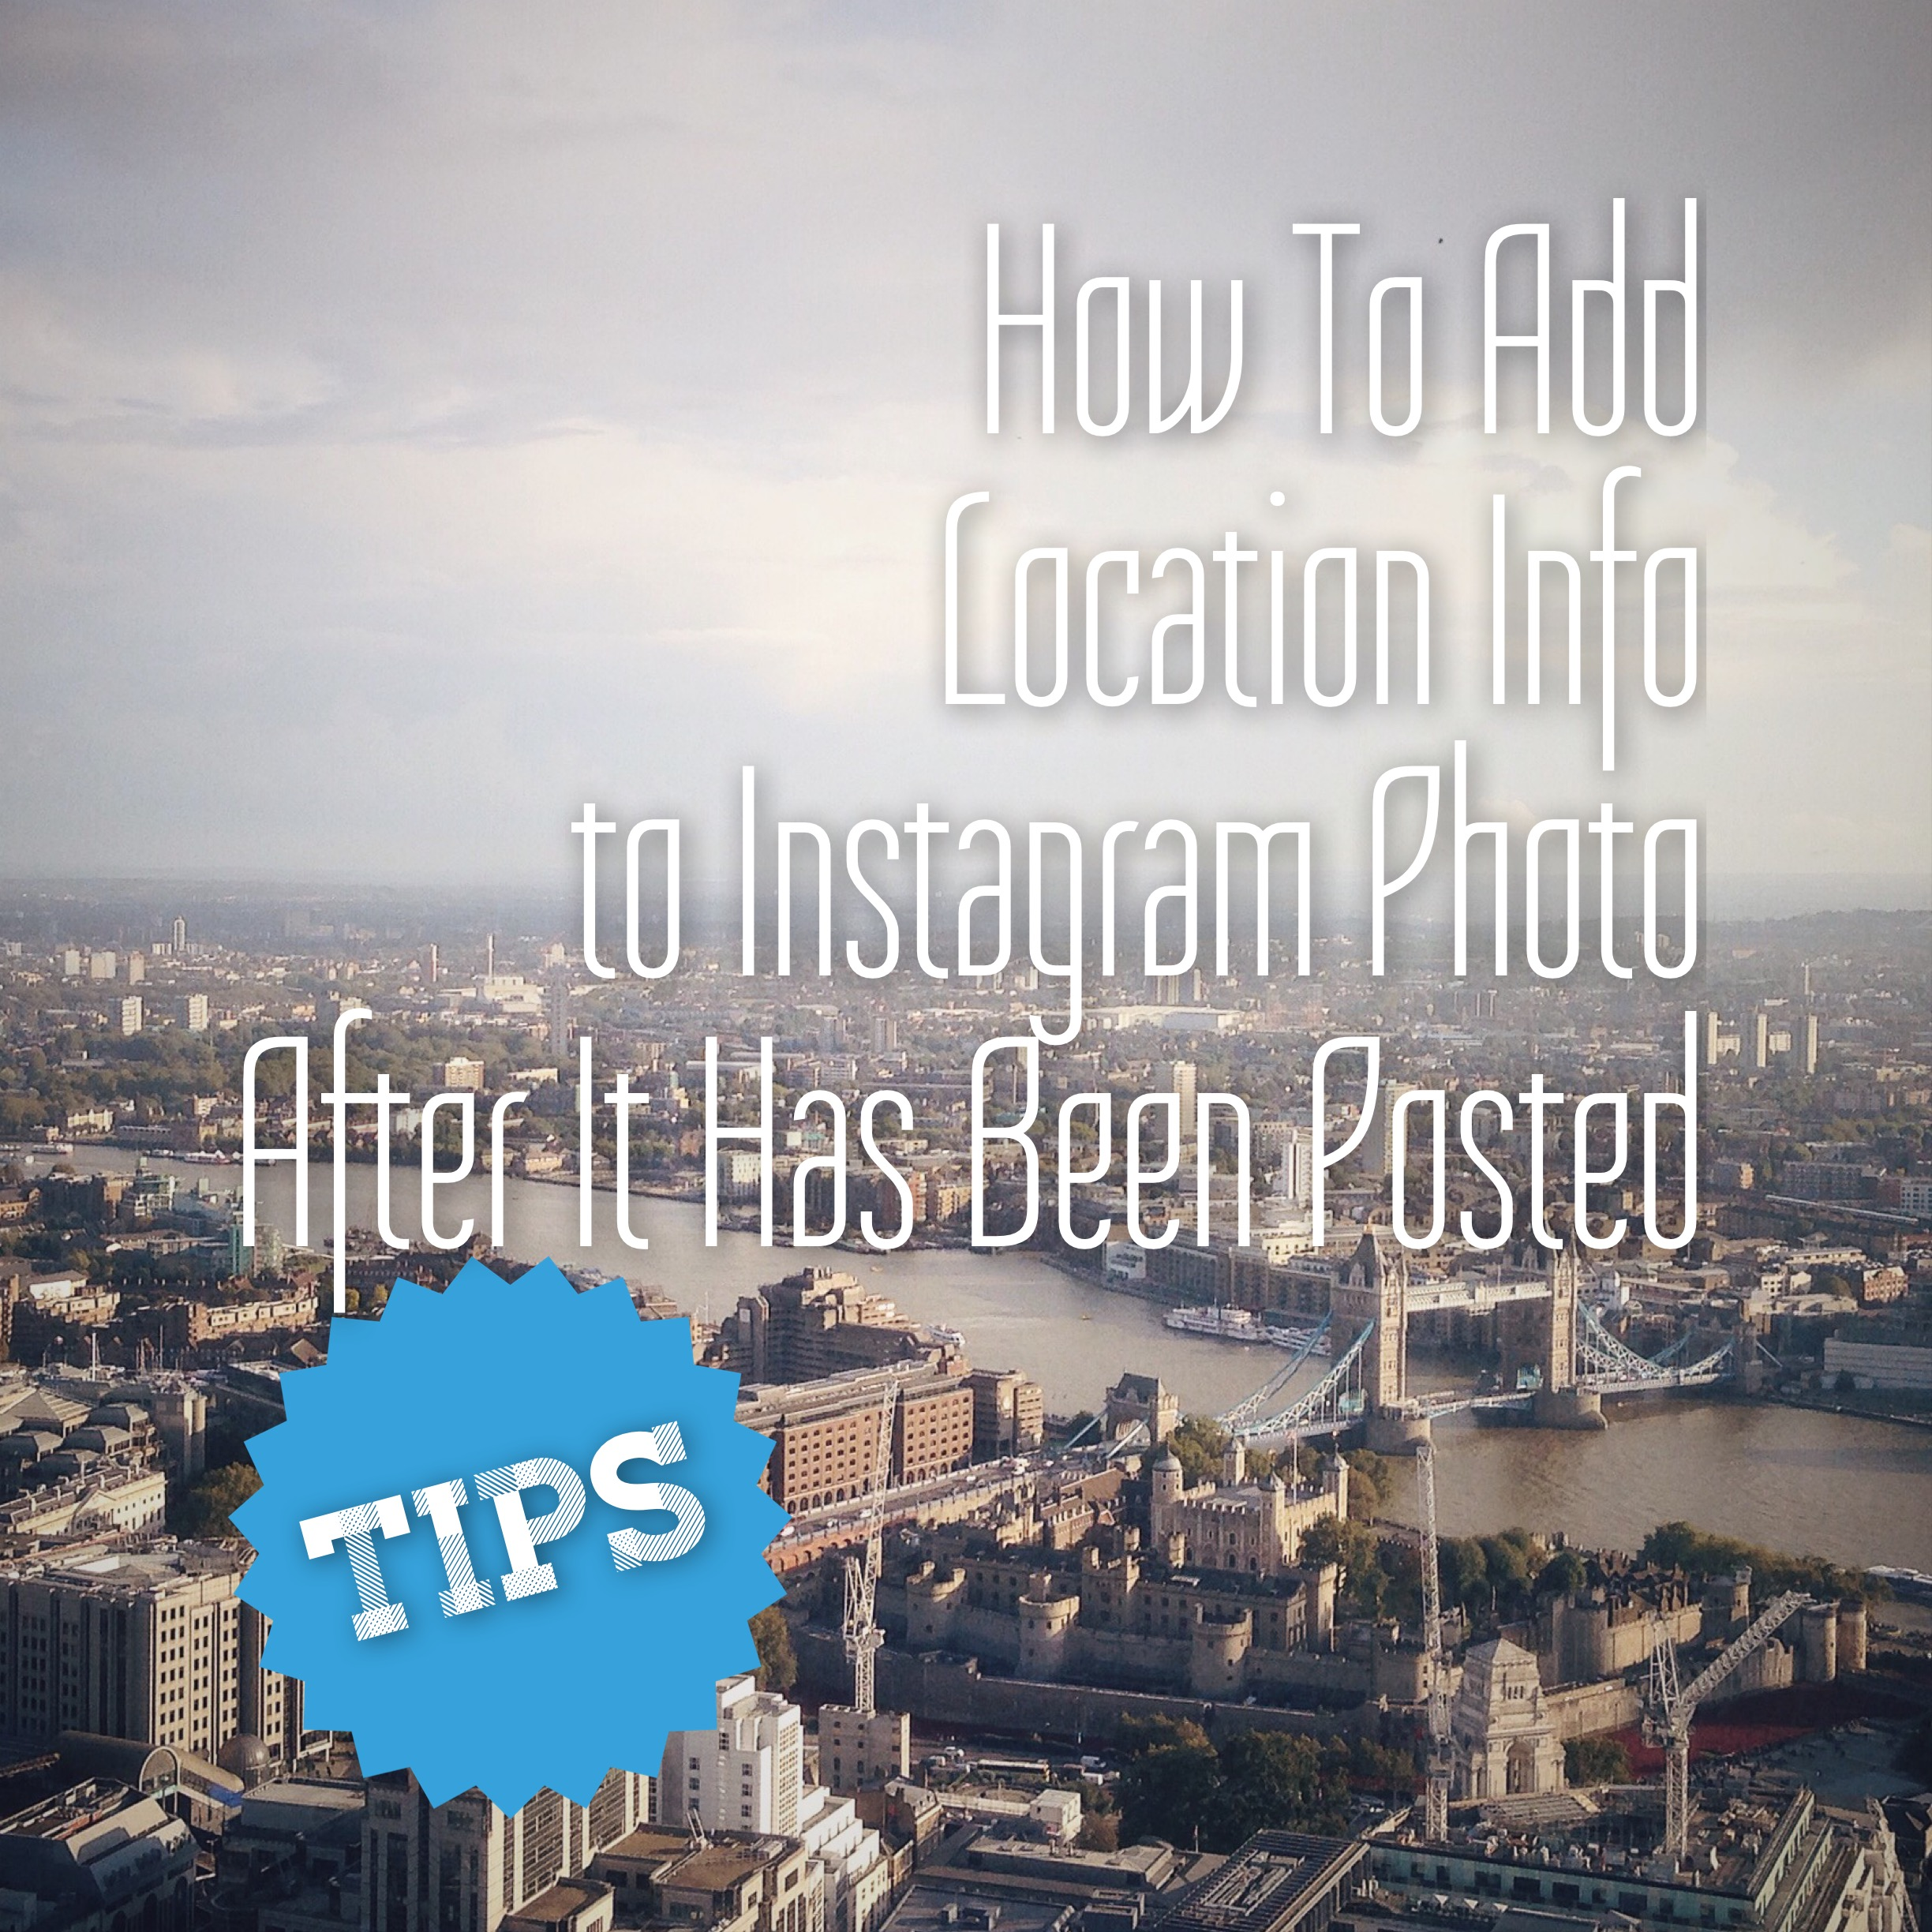 how to add location to your instagram photo after you have already